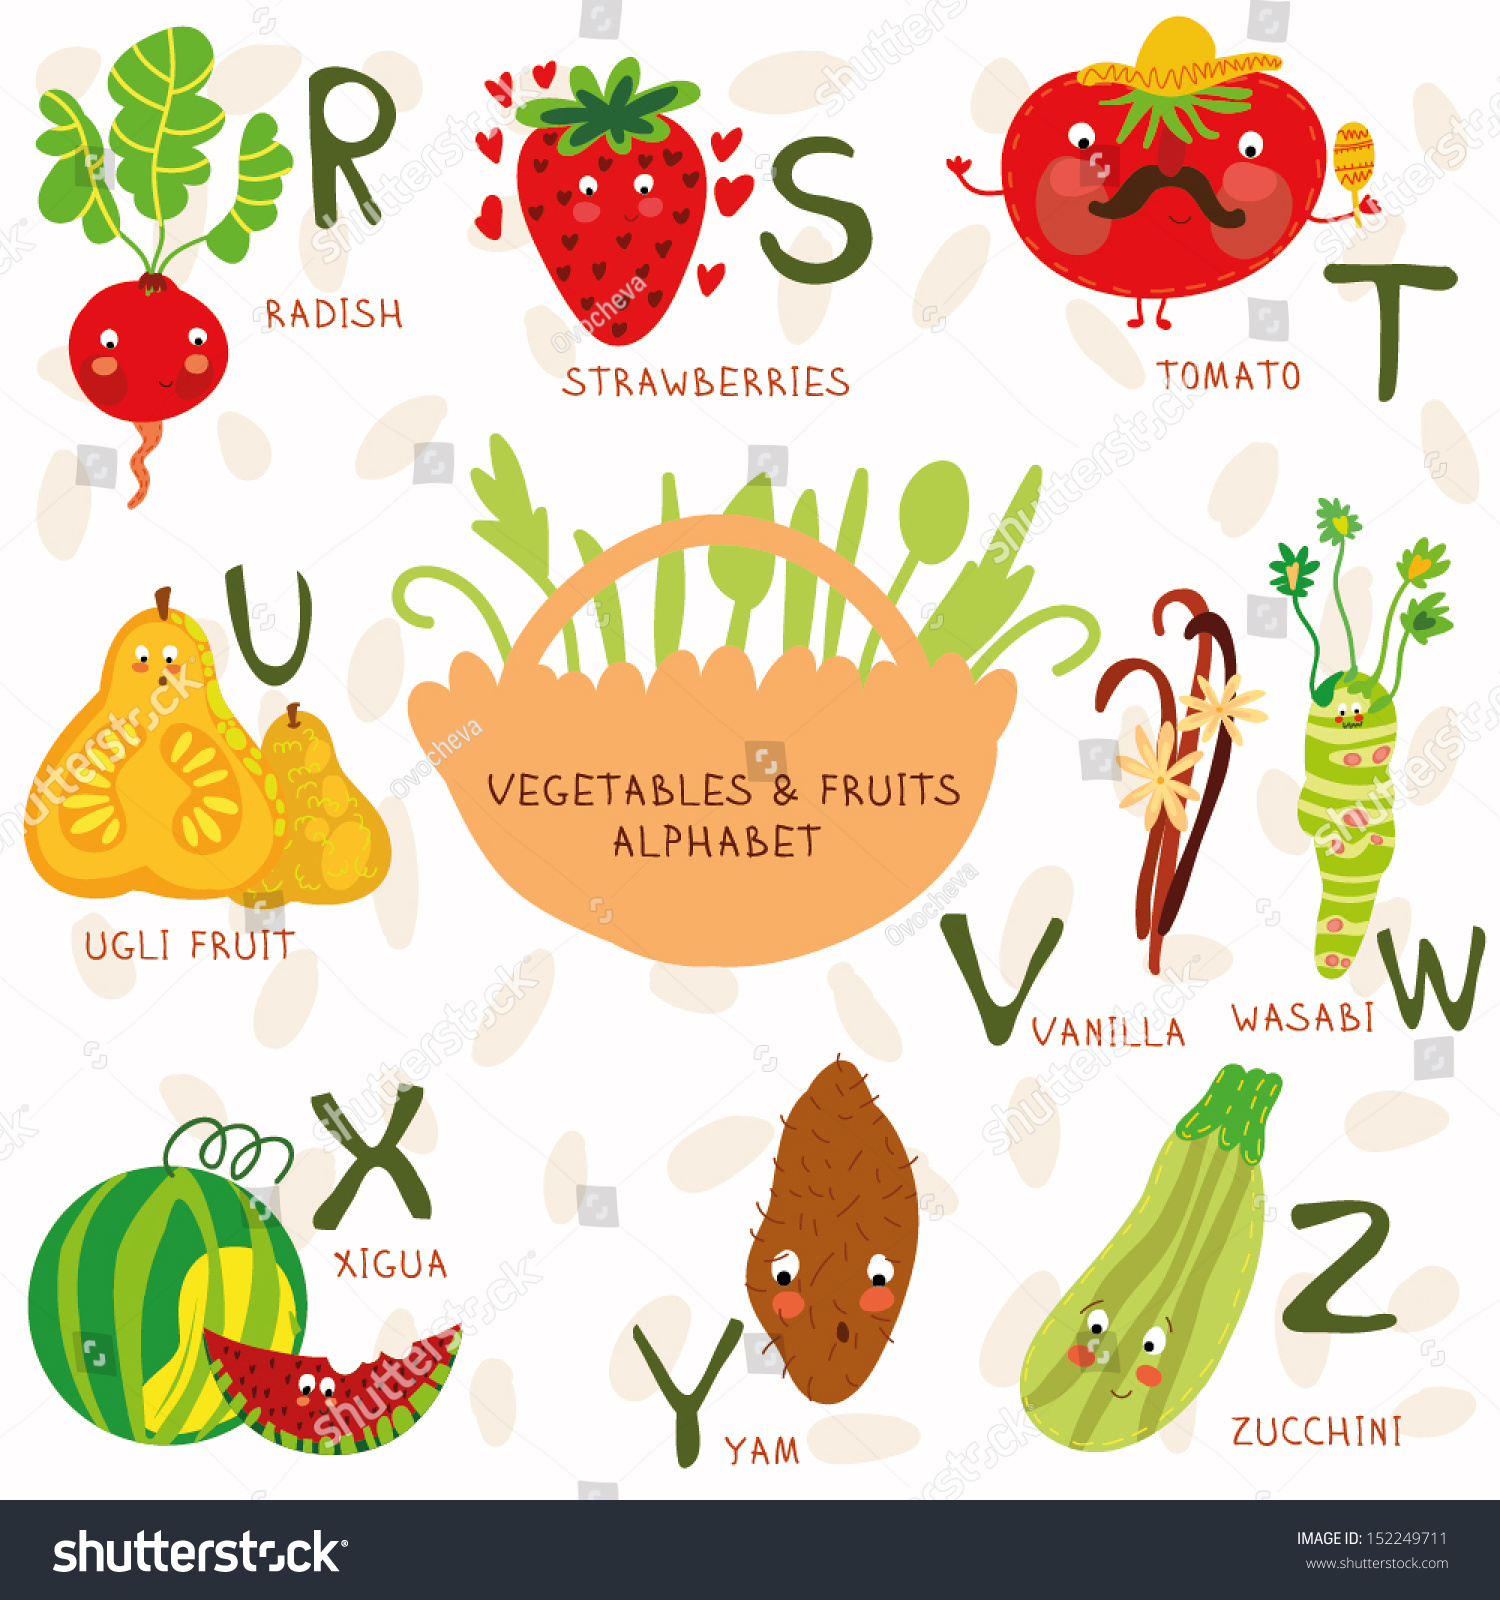 Vegetables That Start With Letter A